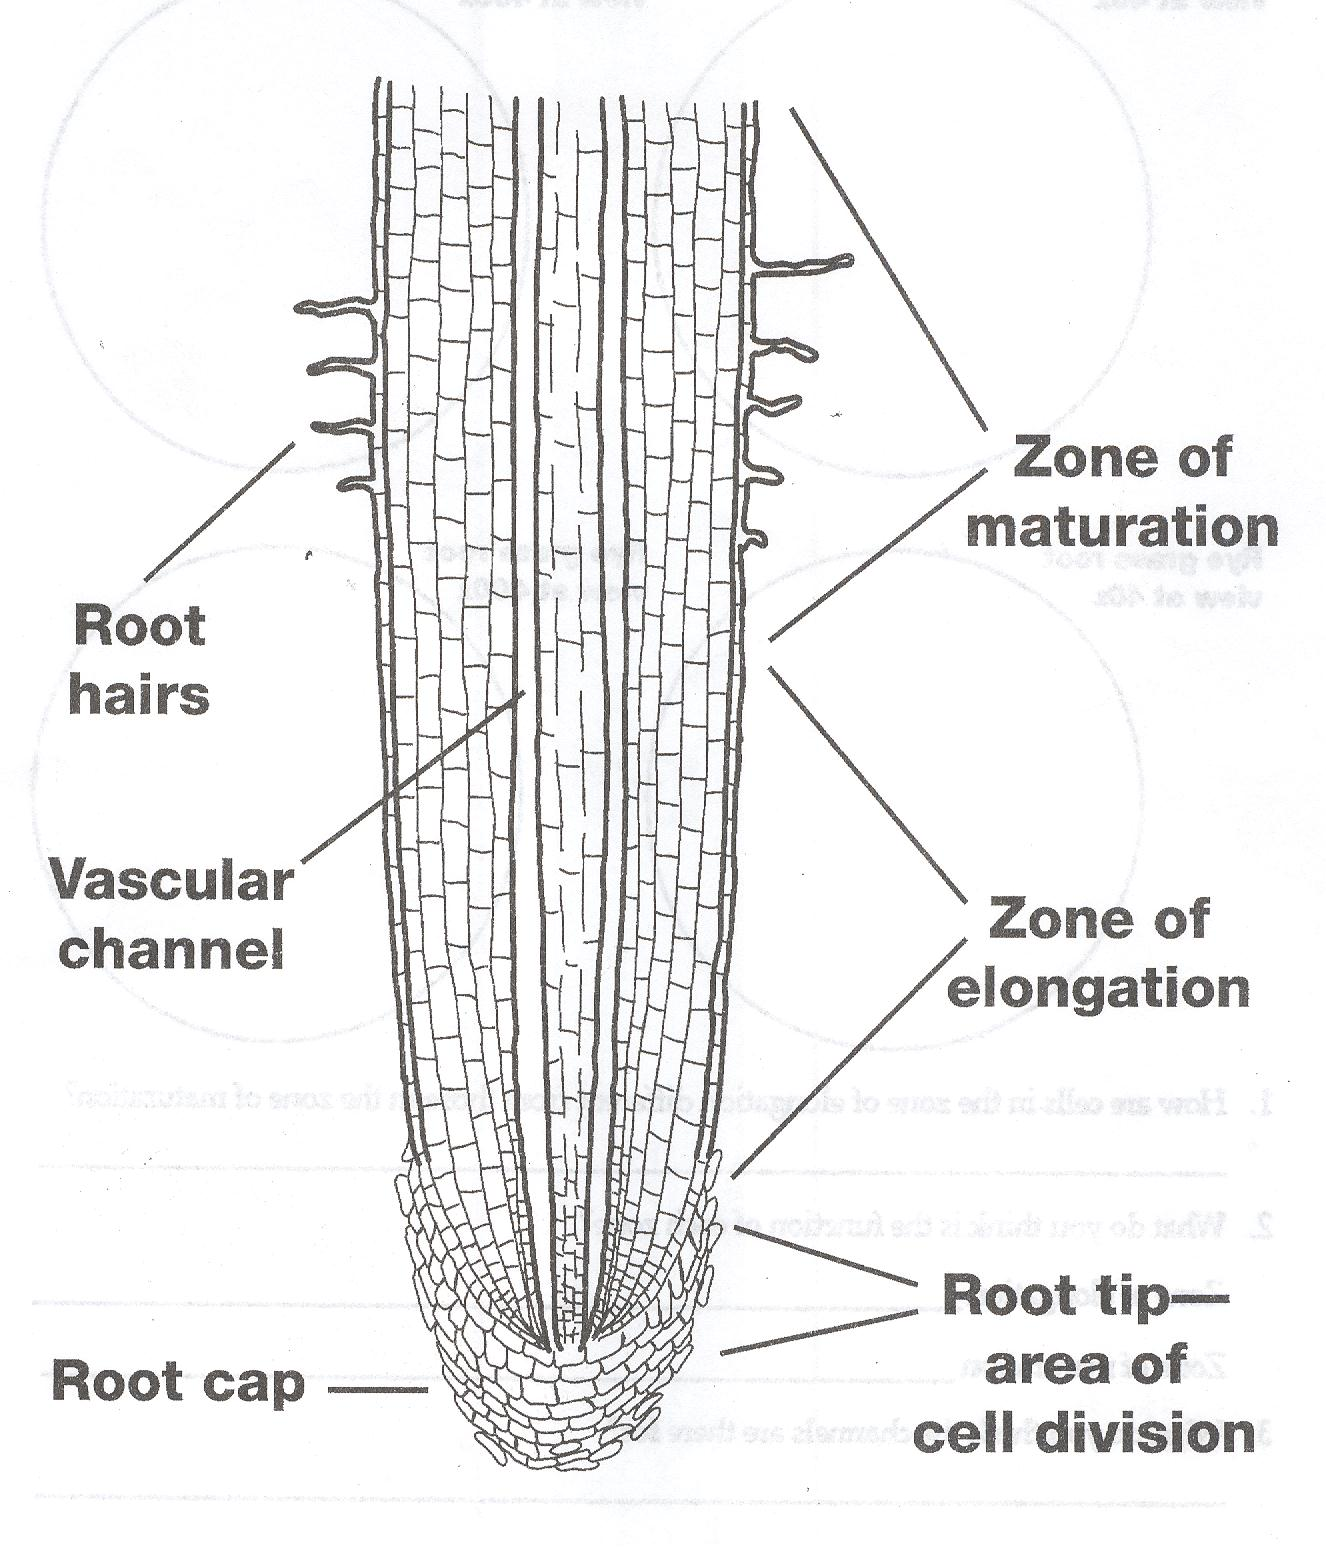 onion cell diagram wiring for three way switch with multiple lights of an root tip longitudinal section